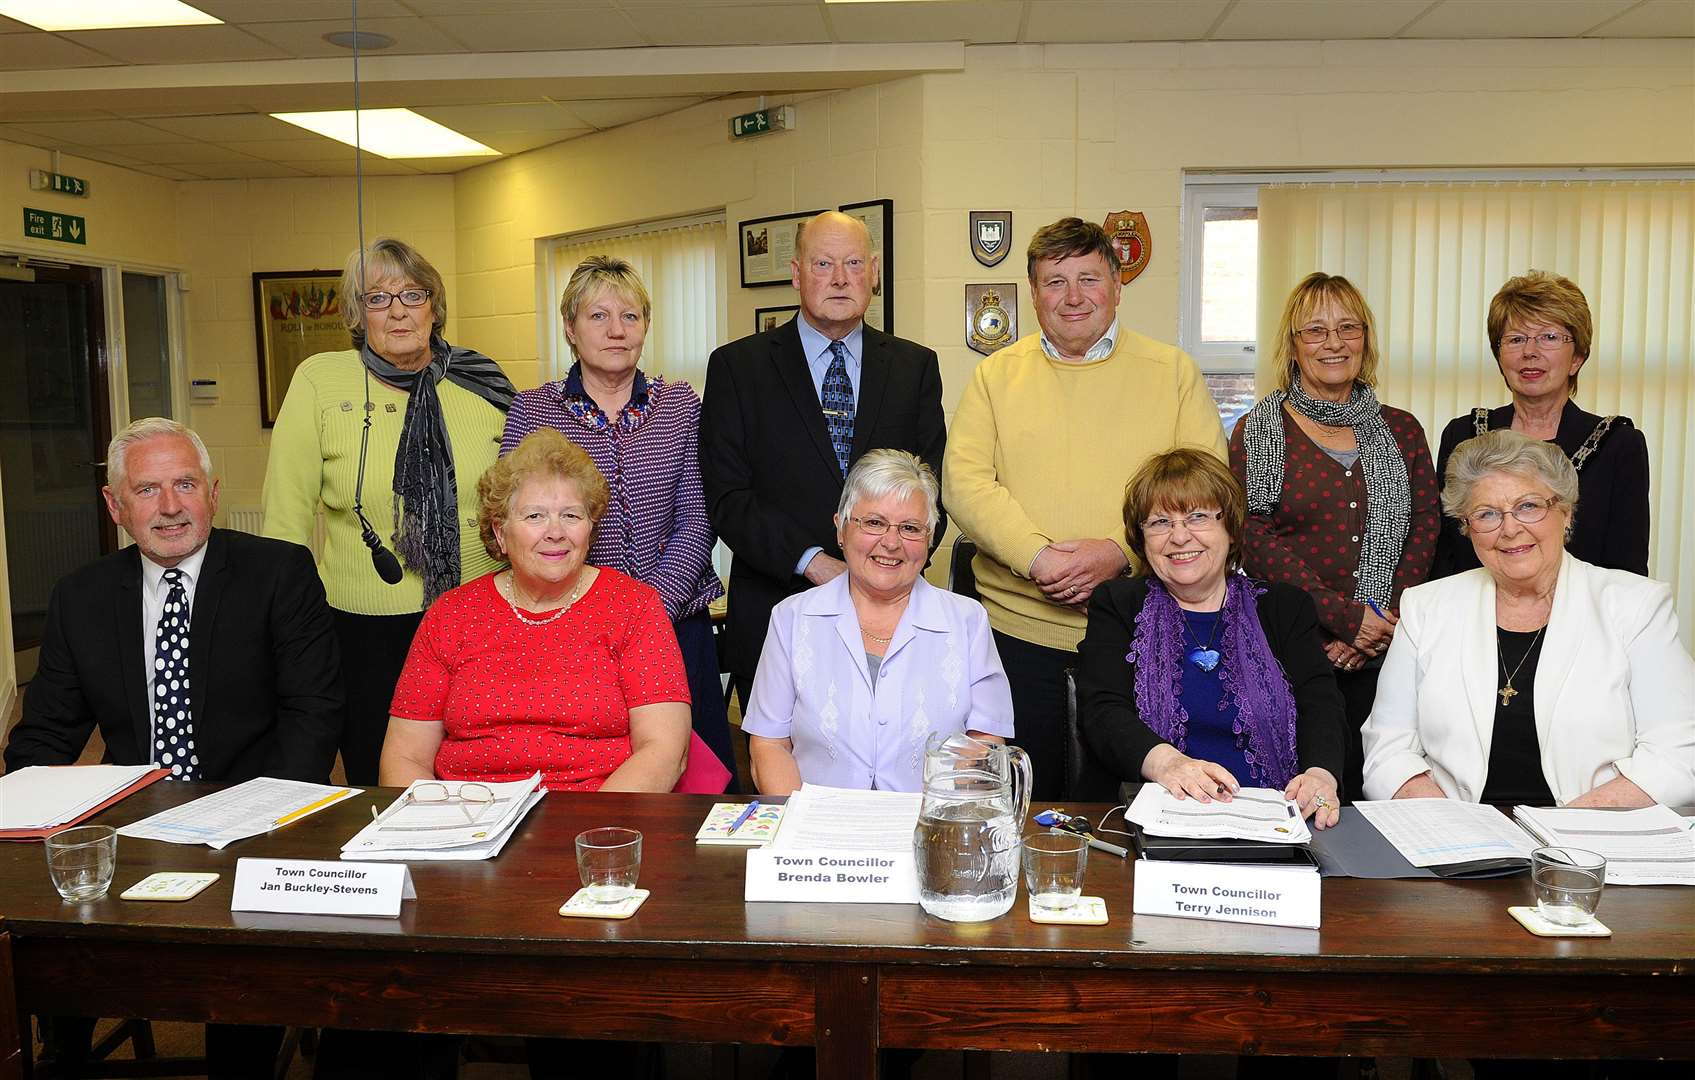 Swaffham Town Council Meeting at the Town Hall LtoR, Back, Sheila Lister, Wendy Bensley, Paul Darby, Colin Houghton, Jill Skinner, Anne Thorp LtoR, Front, Steve Allen, Jan Buckley-Stevens, Brenda Bowler, Terry Jonnison, Shirley Matthews